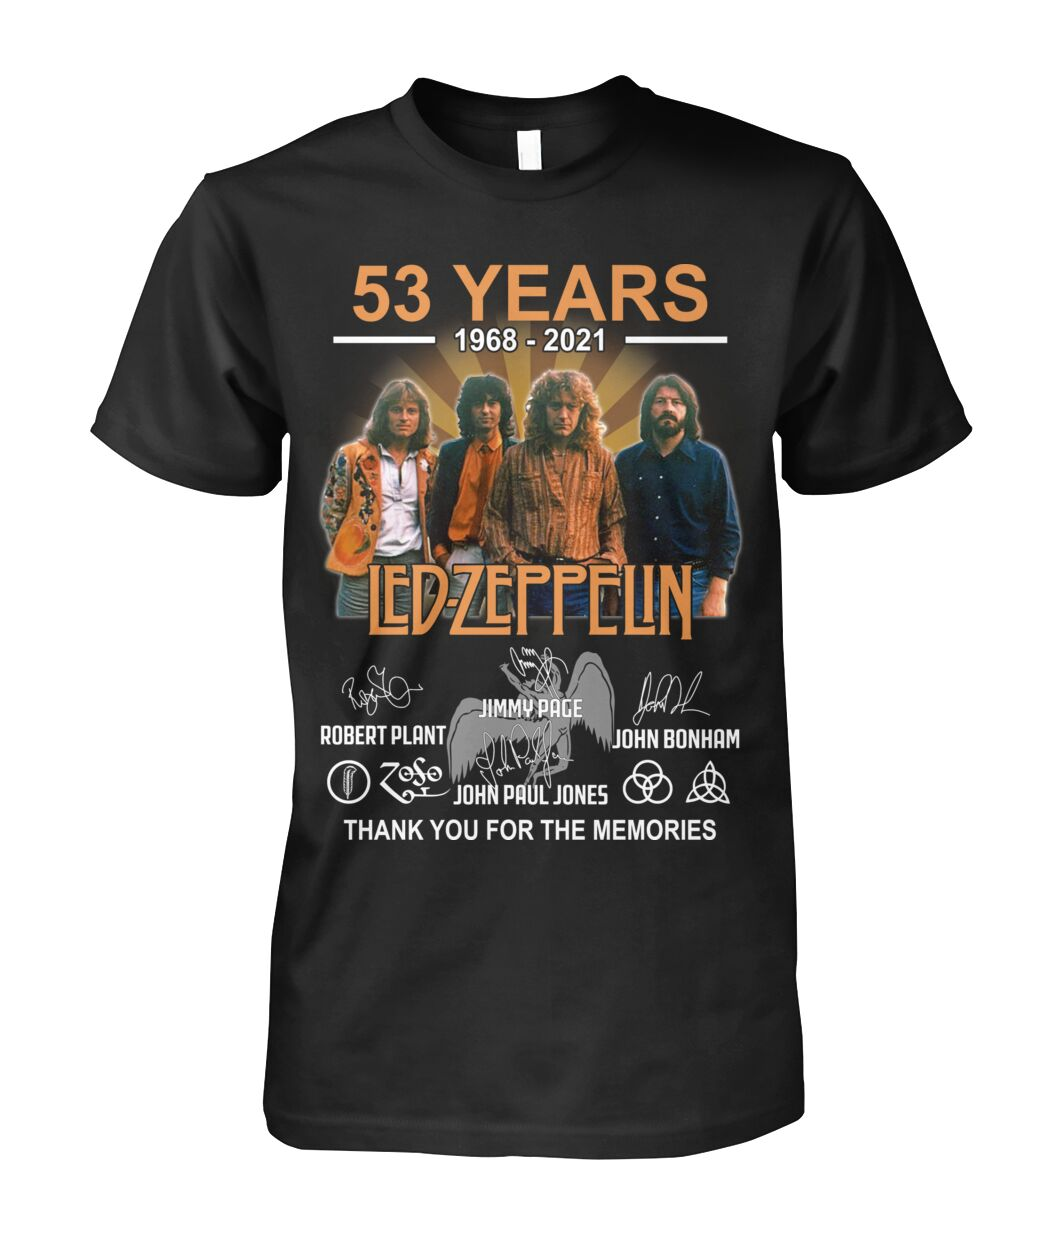 53 years Led Zeppelin signature thank you for the memories shirt